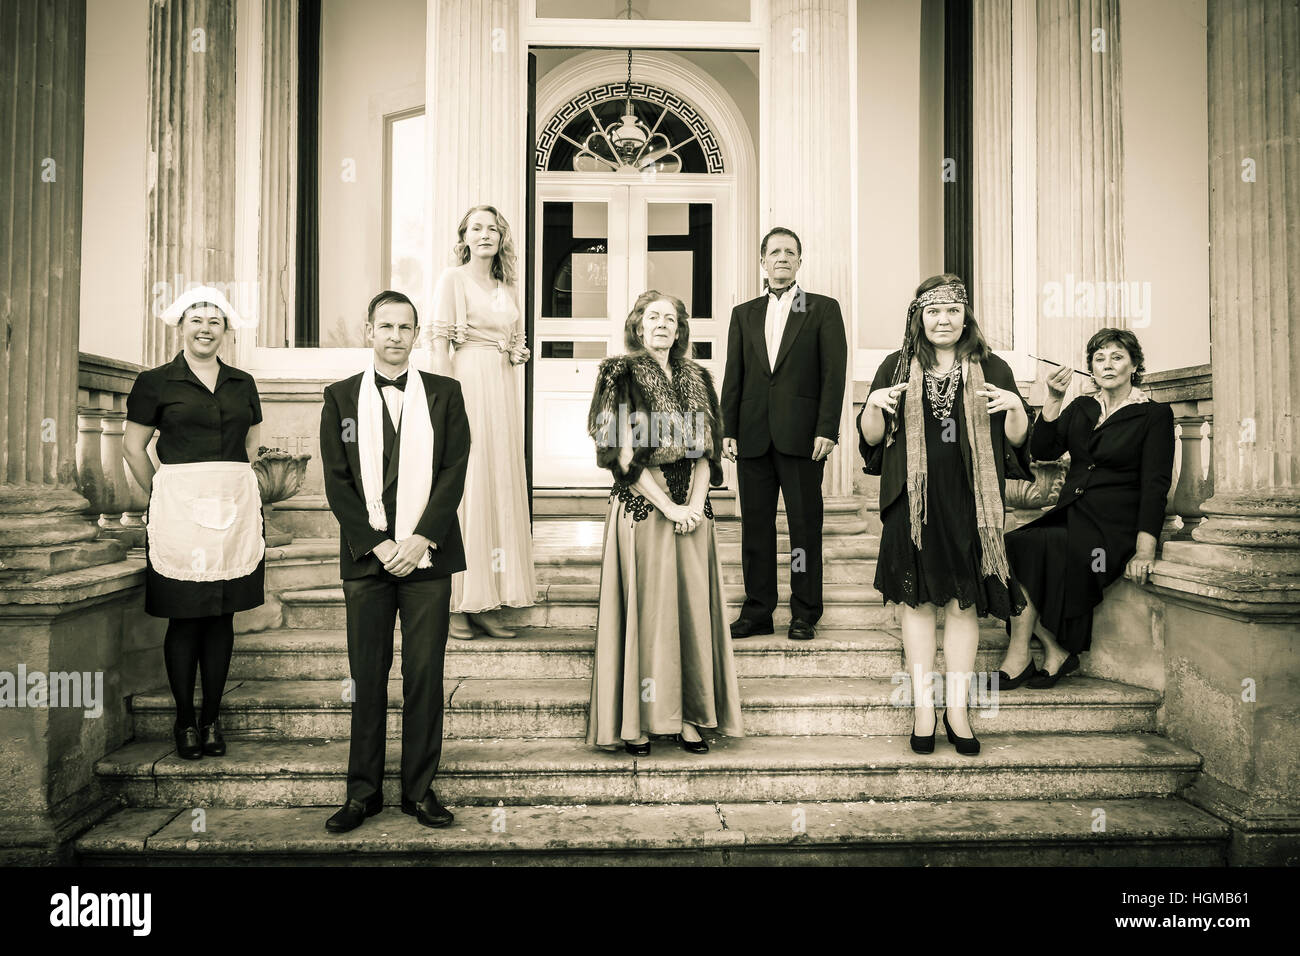 English aristocratic family and servant on steps of stately home - Stock Image